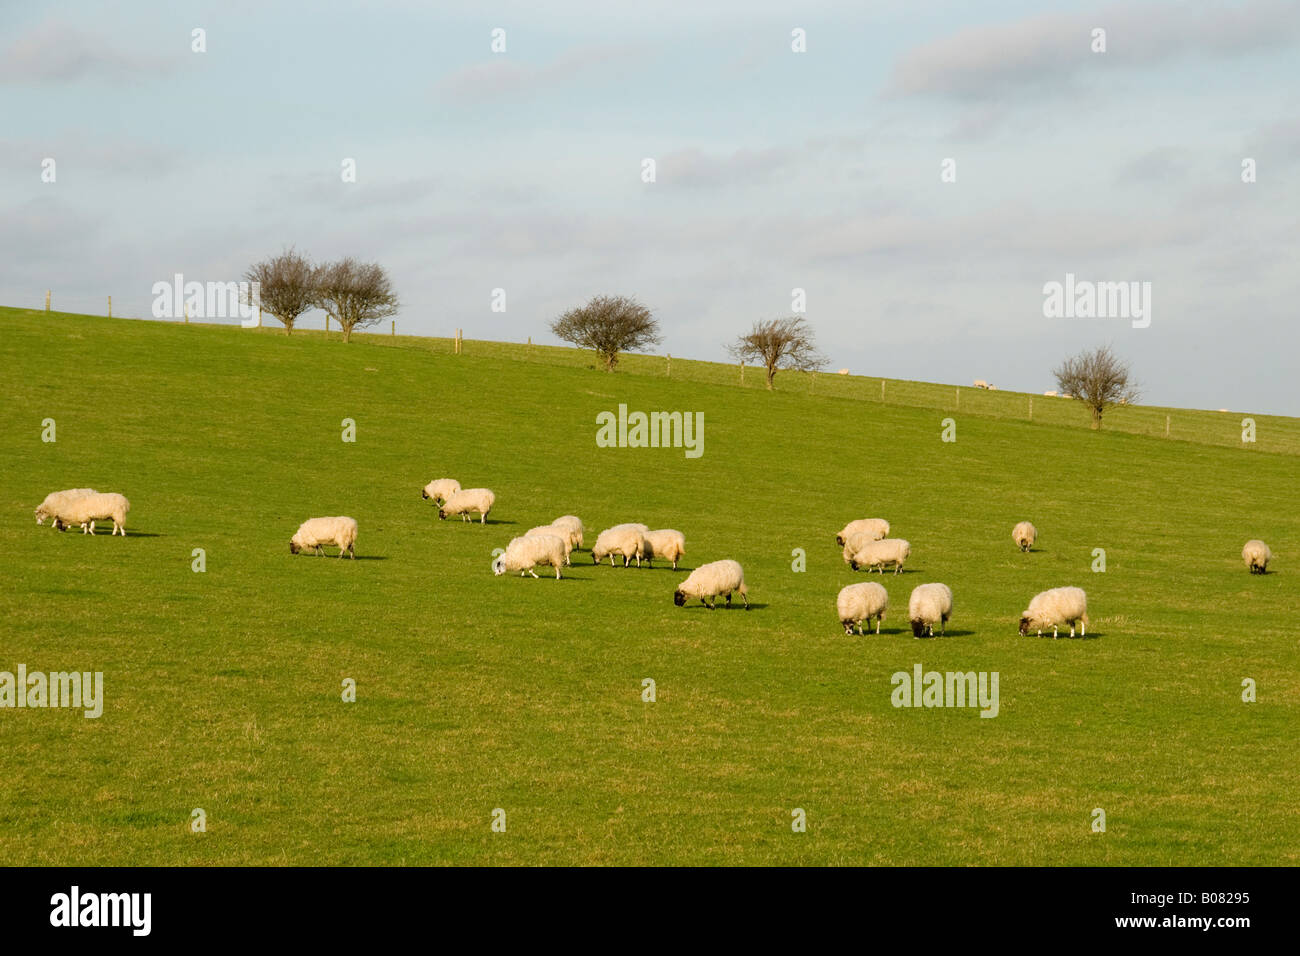 Sheep in a field near Tring, Hertfordshire, England, UK Stock Photo